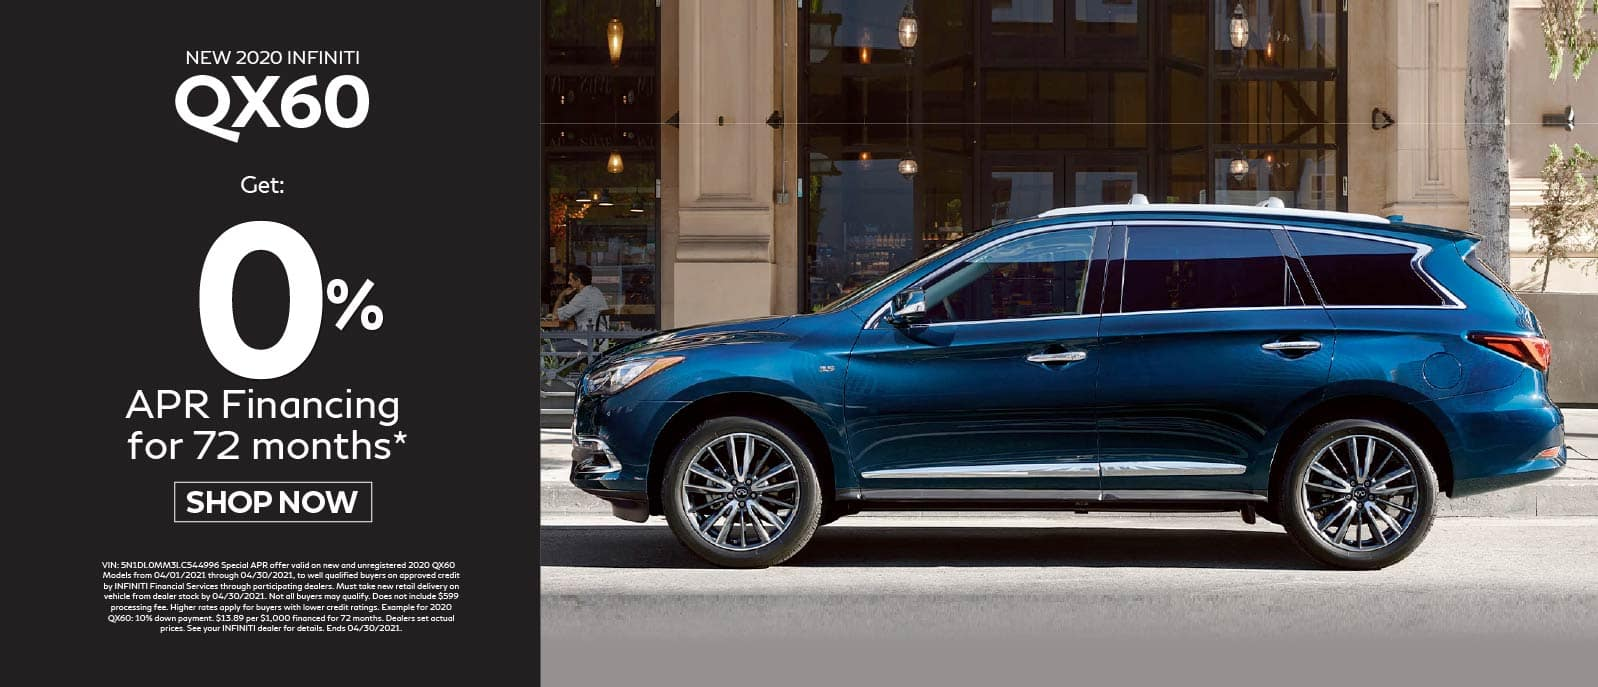 2020 QX60 Get 0.0% APR Financing for 72 months* Shop now.